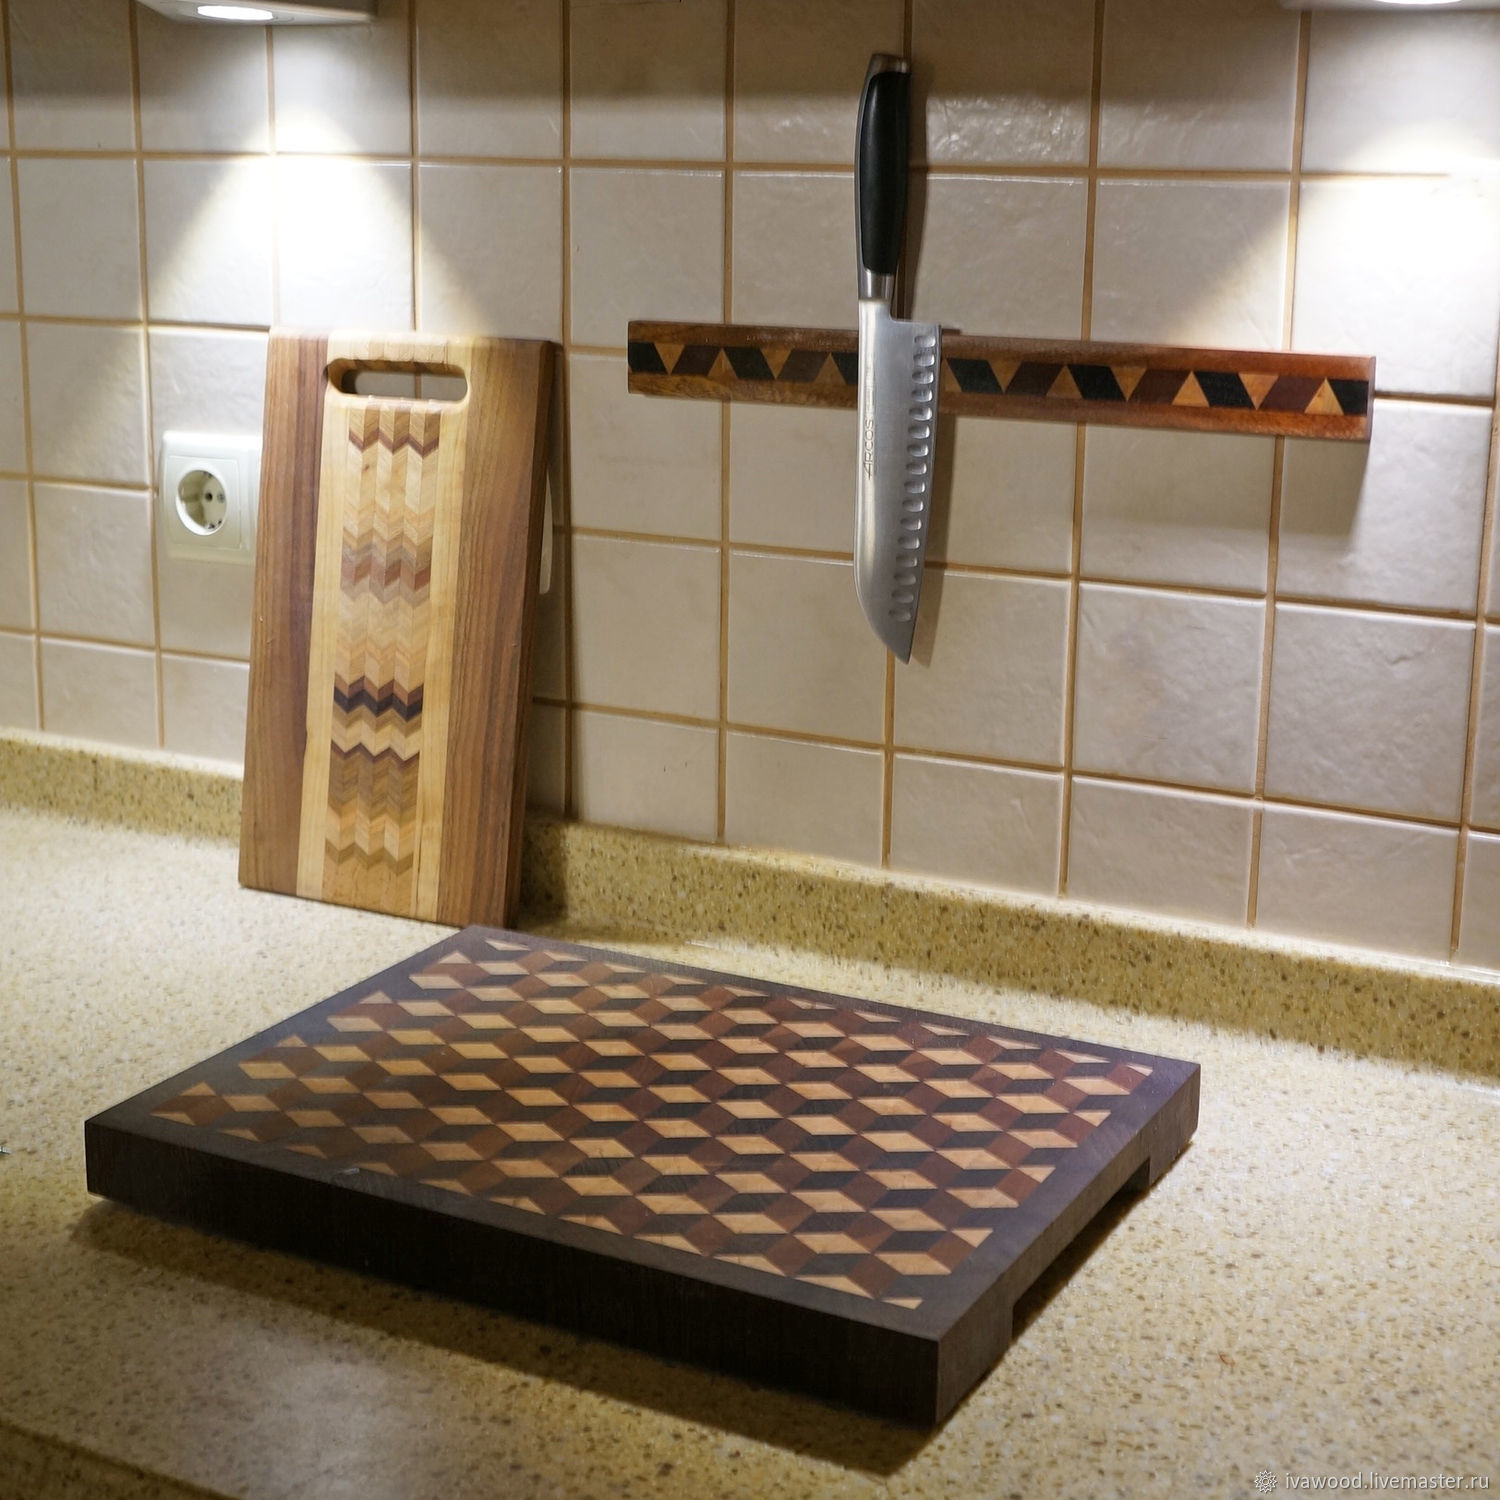 Magnetic holder for knives can be made in conjunction with your kitchen, blackboard or other. Just email me if interested in a custom order.